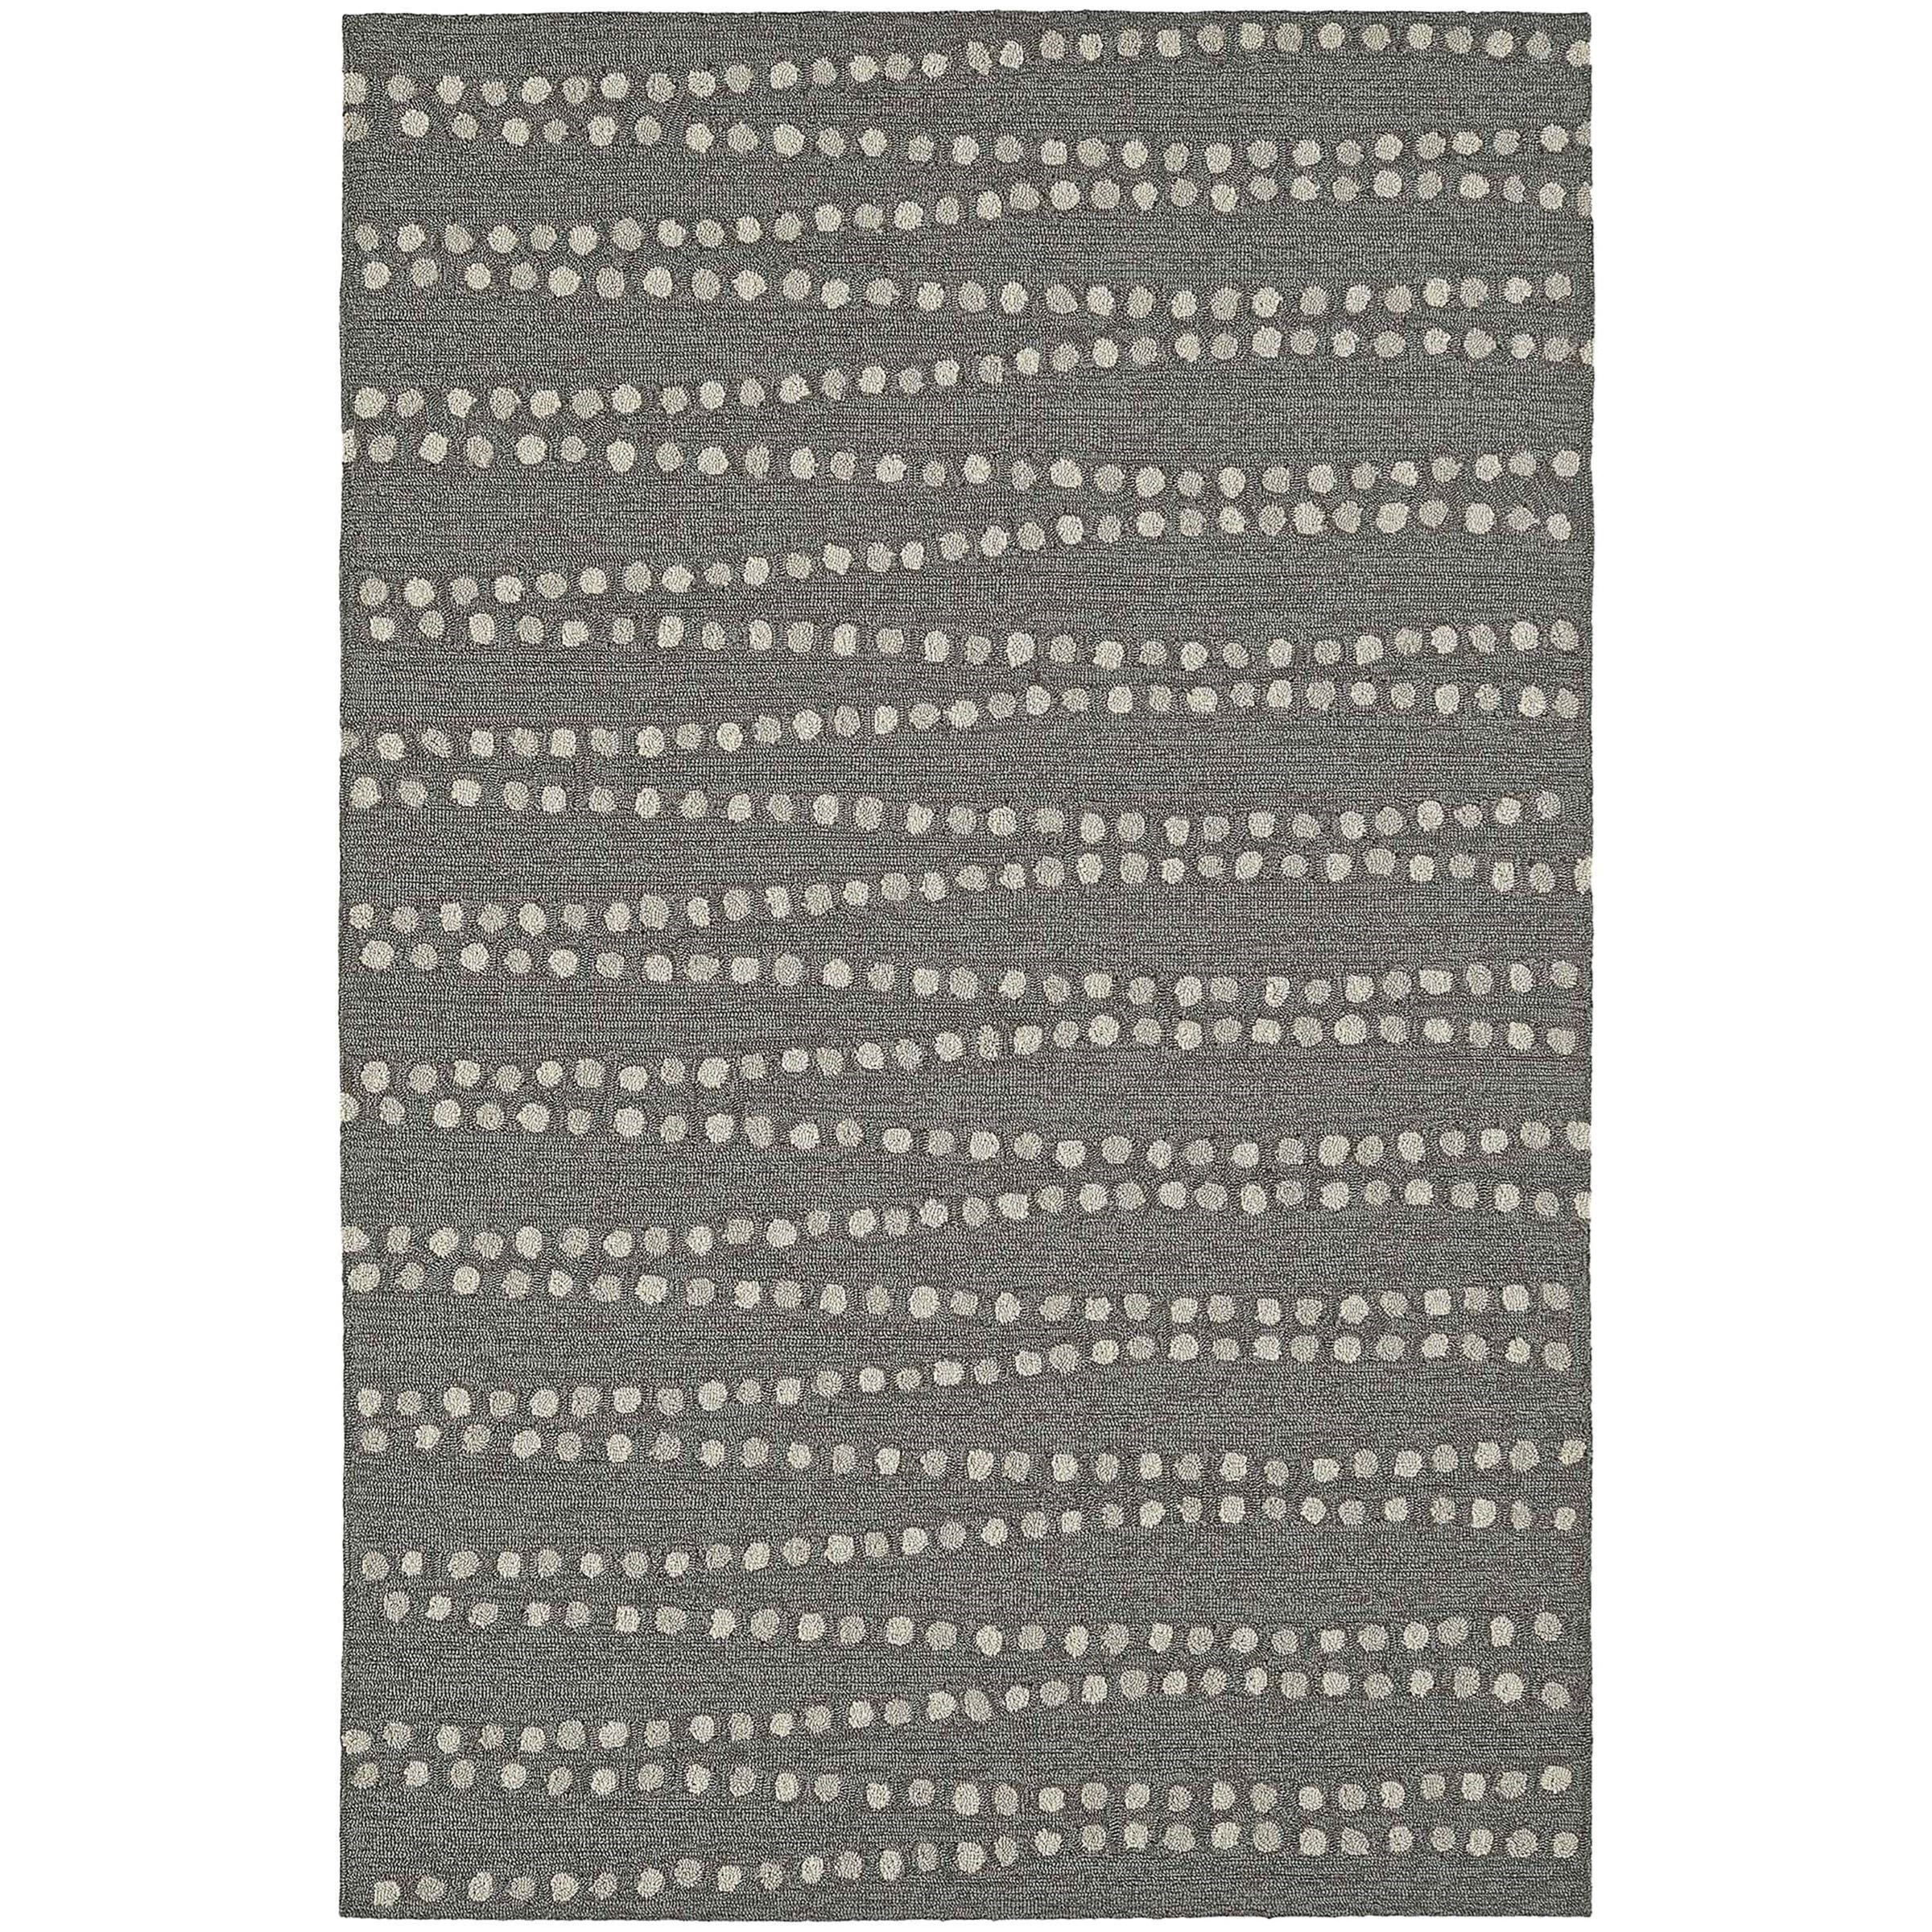 Cabana Pewter 9'X13' Rug by Dalyn at Sadler's Home Furnishings